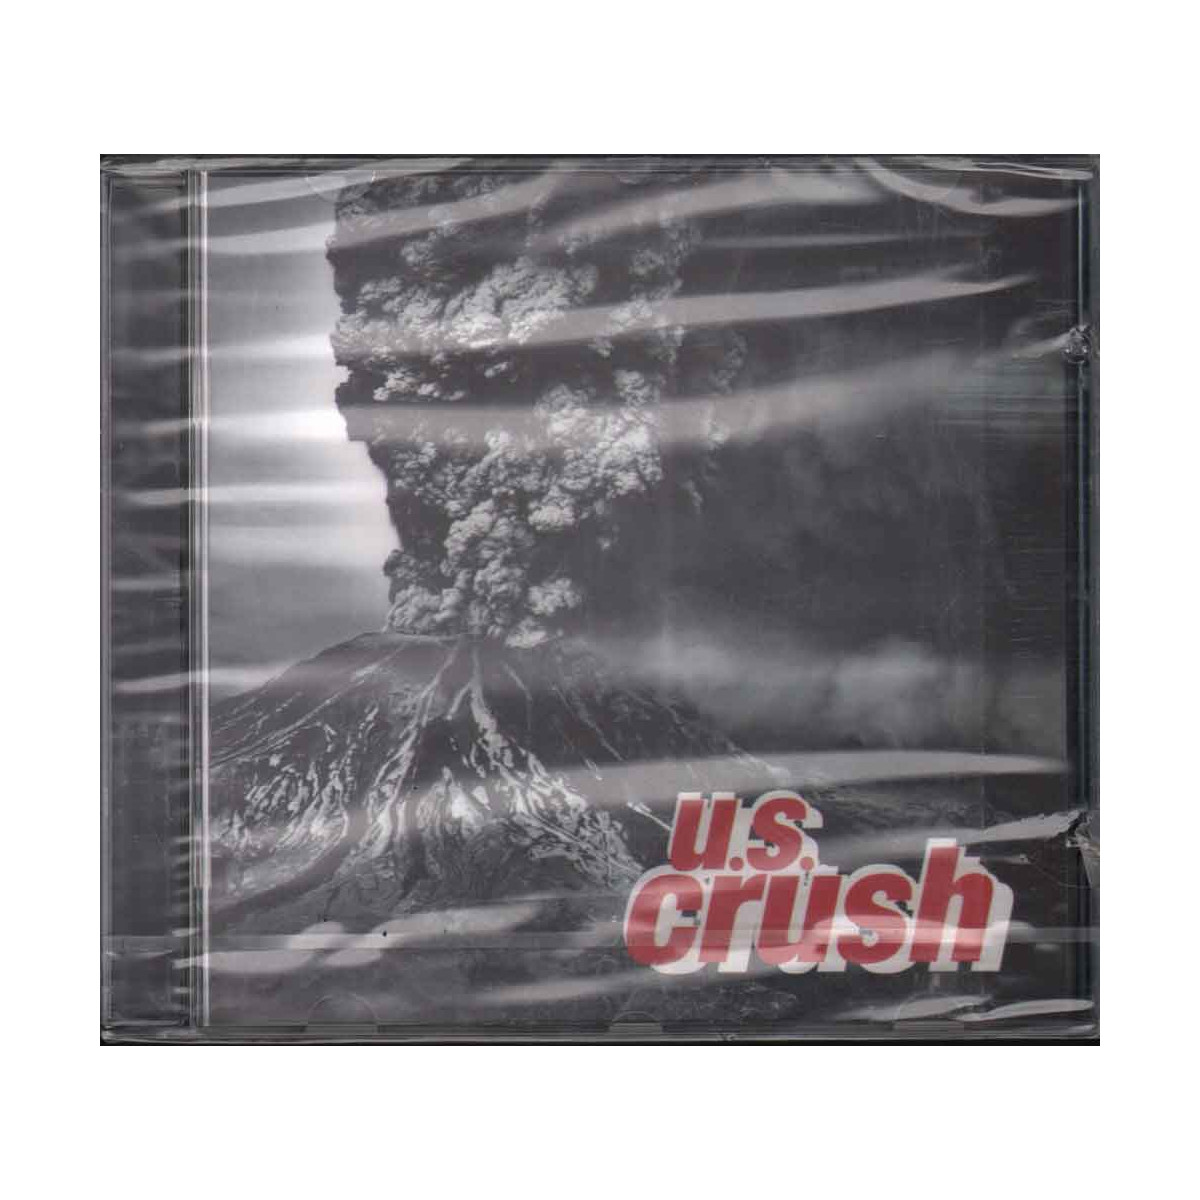 U.S. Crush  CD U.S. Crush (omonimo / same) Nuovo Sigillato 0724384886820